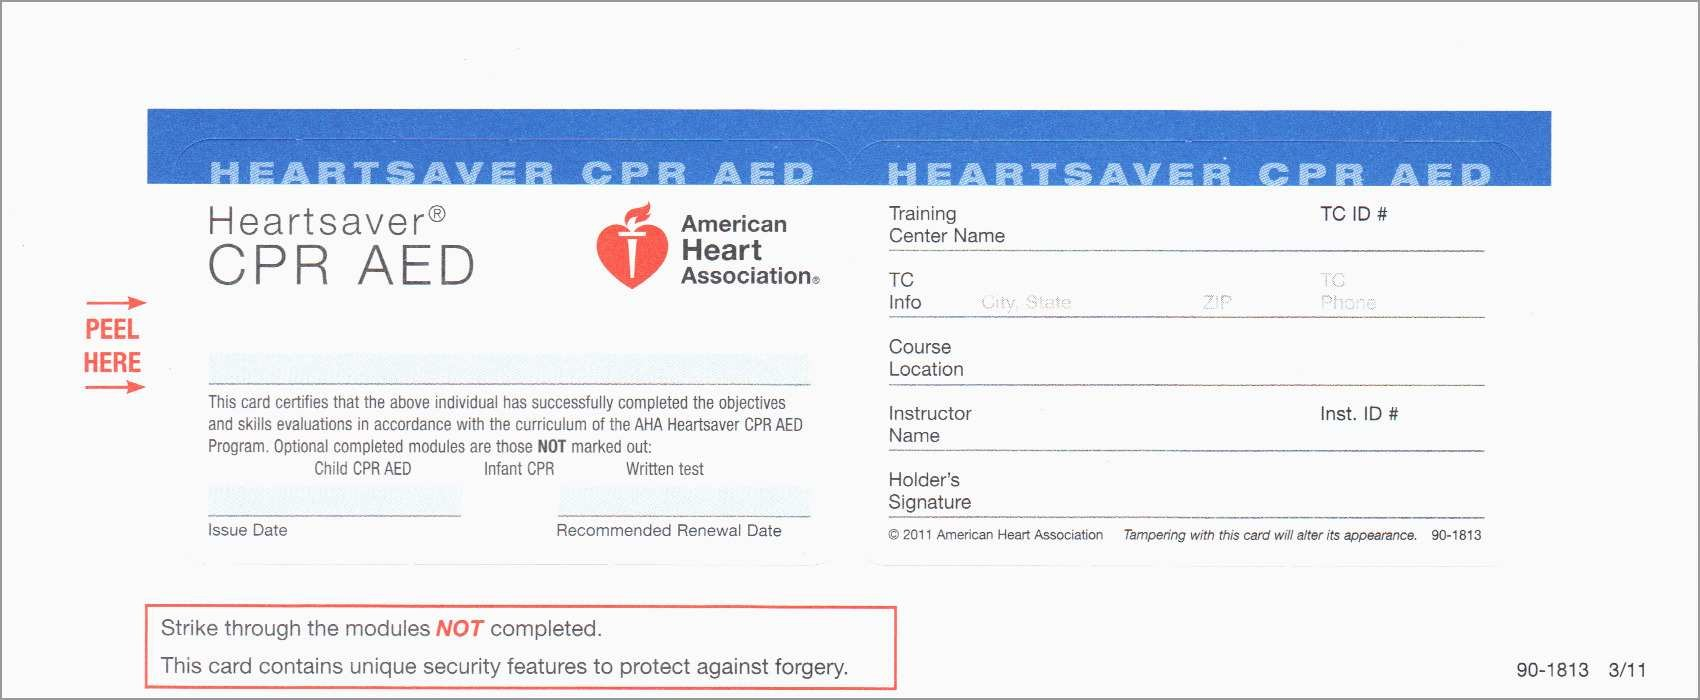 Free Cpr Card Template Inspirational Cpr Card Template  Best Of Intended For Cpr Card Template